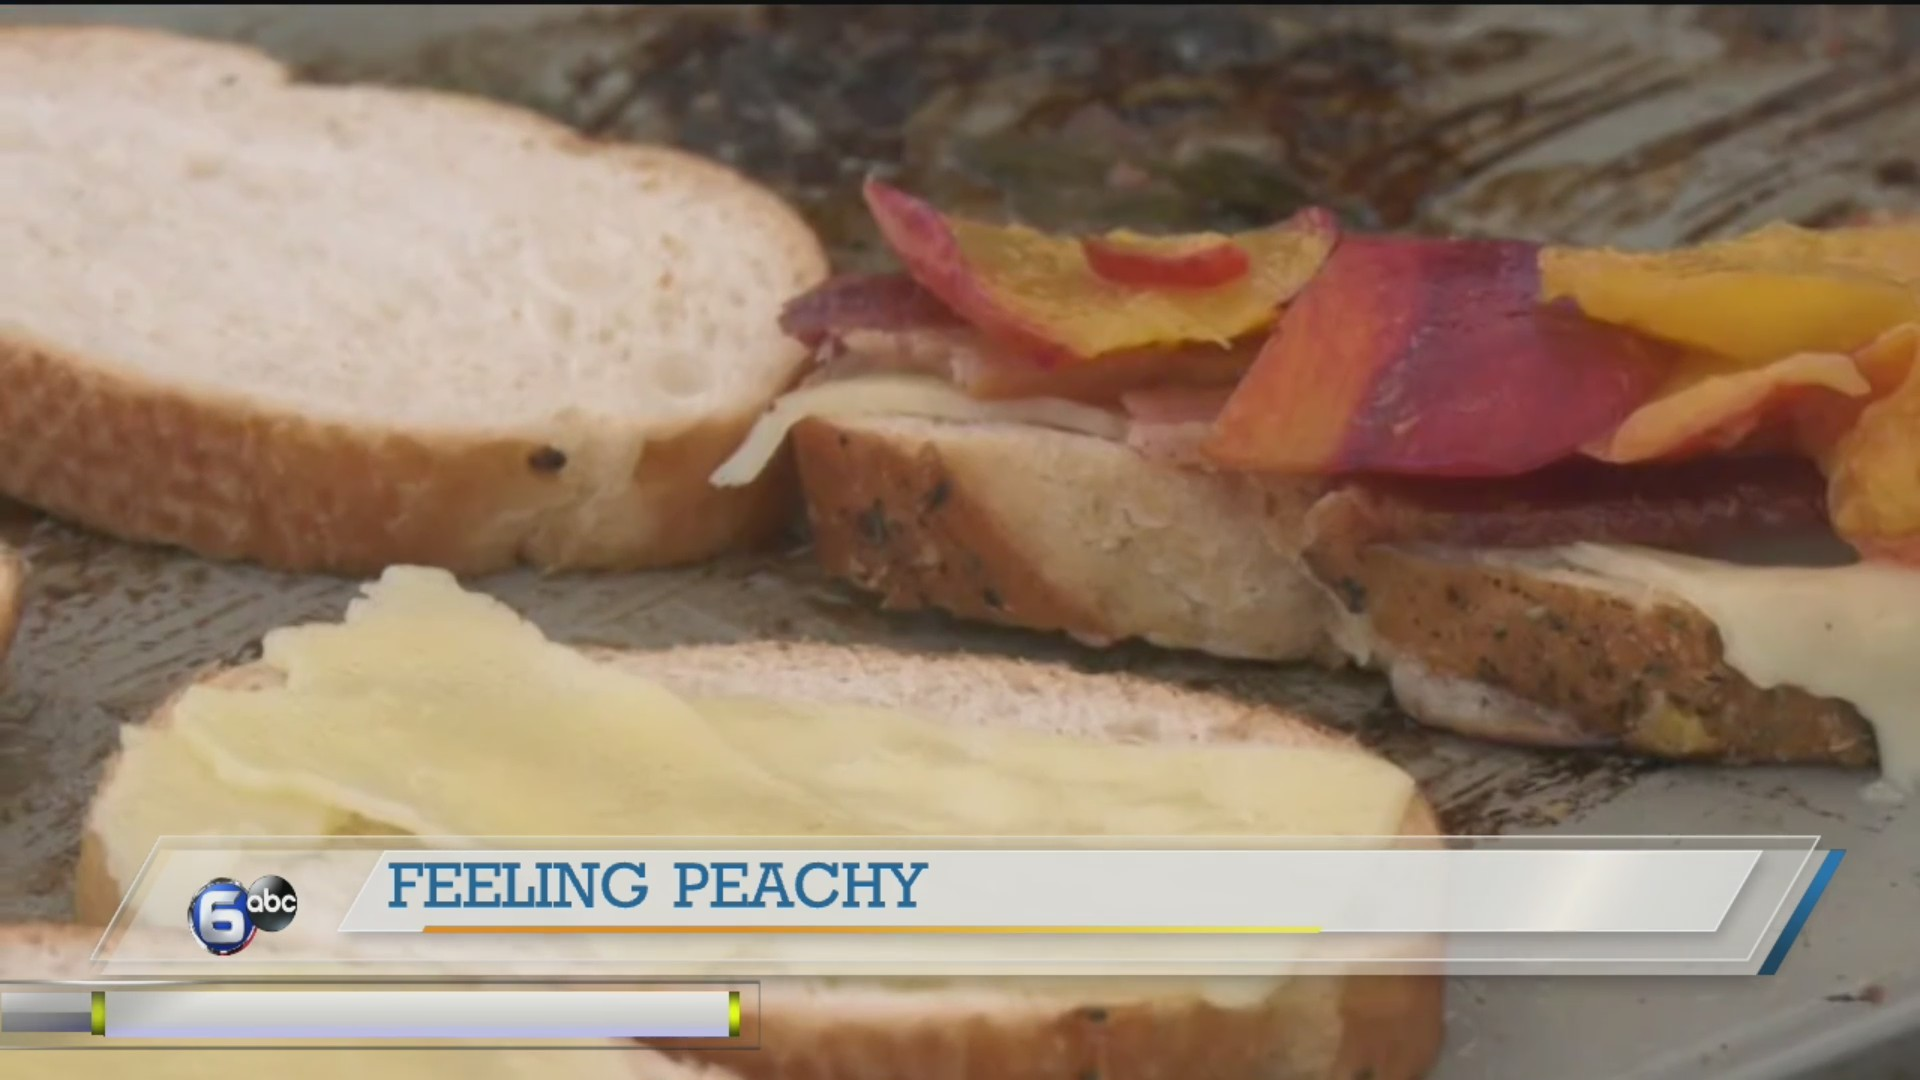 Chef Scott Whittaker cooks up a delicious peach sandwich